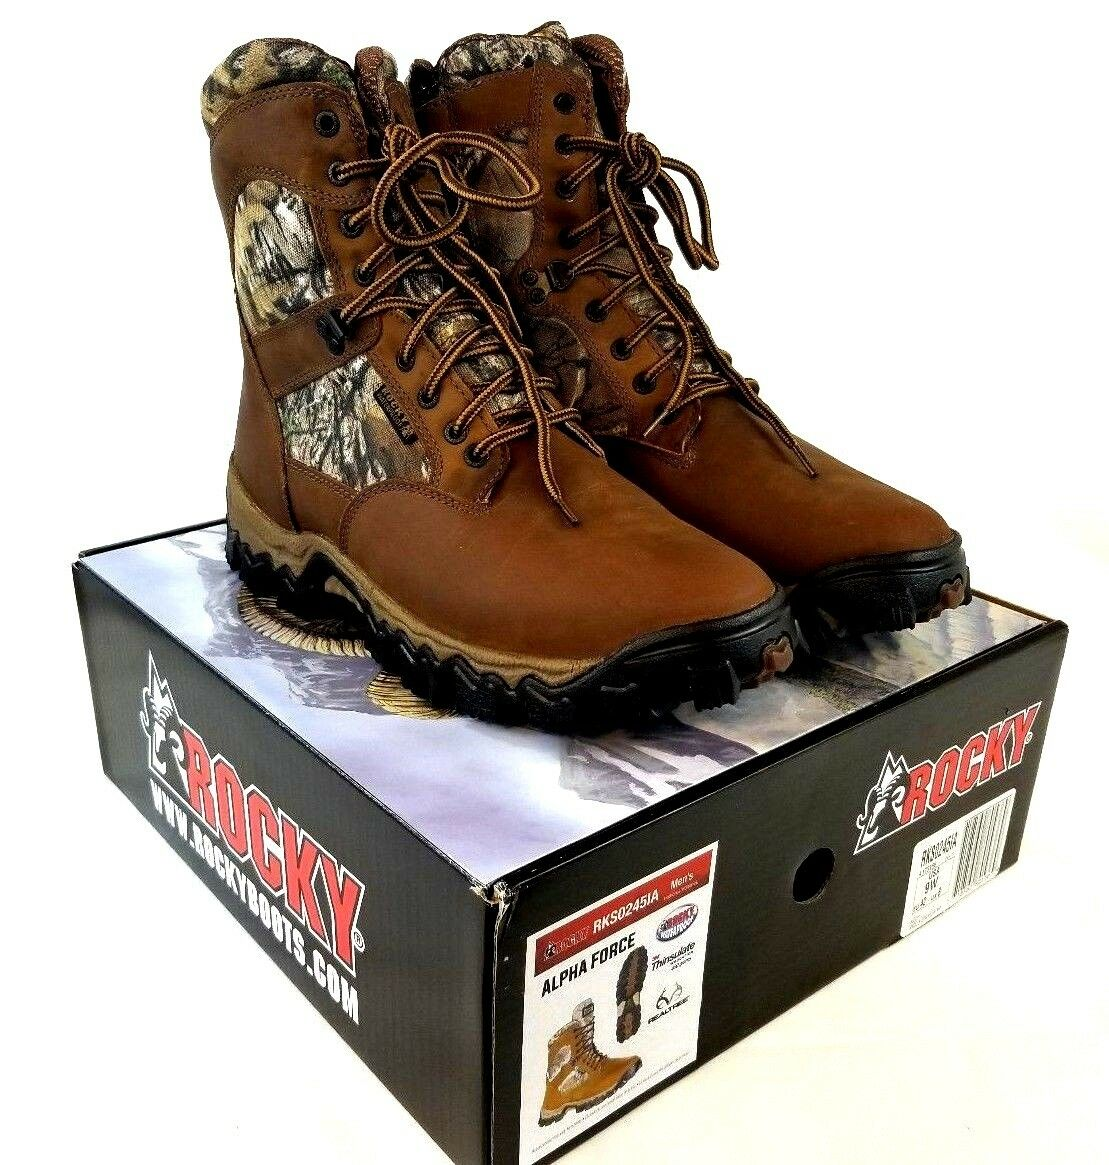 Rocky Men's Alpha Force Waterproof 400G Insulated Outdoor Camo Boots US 9W Z452